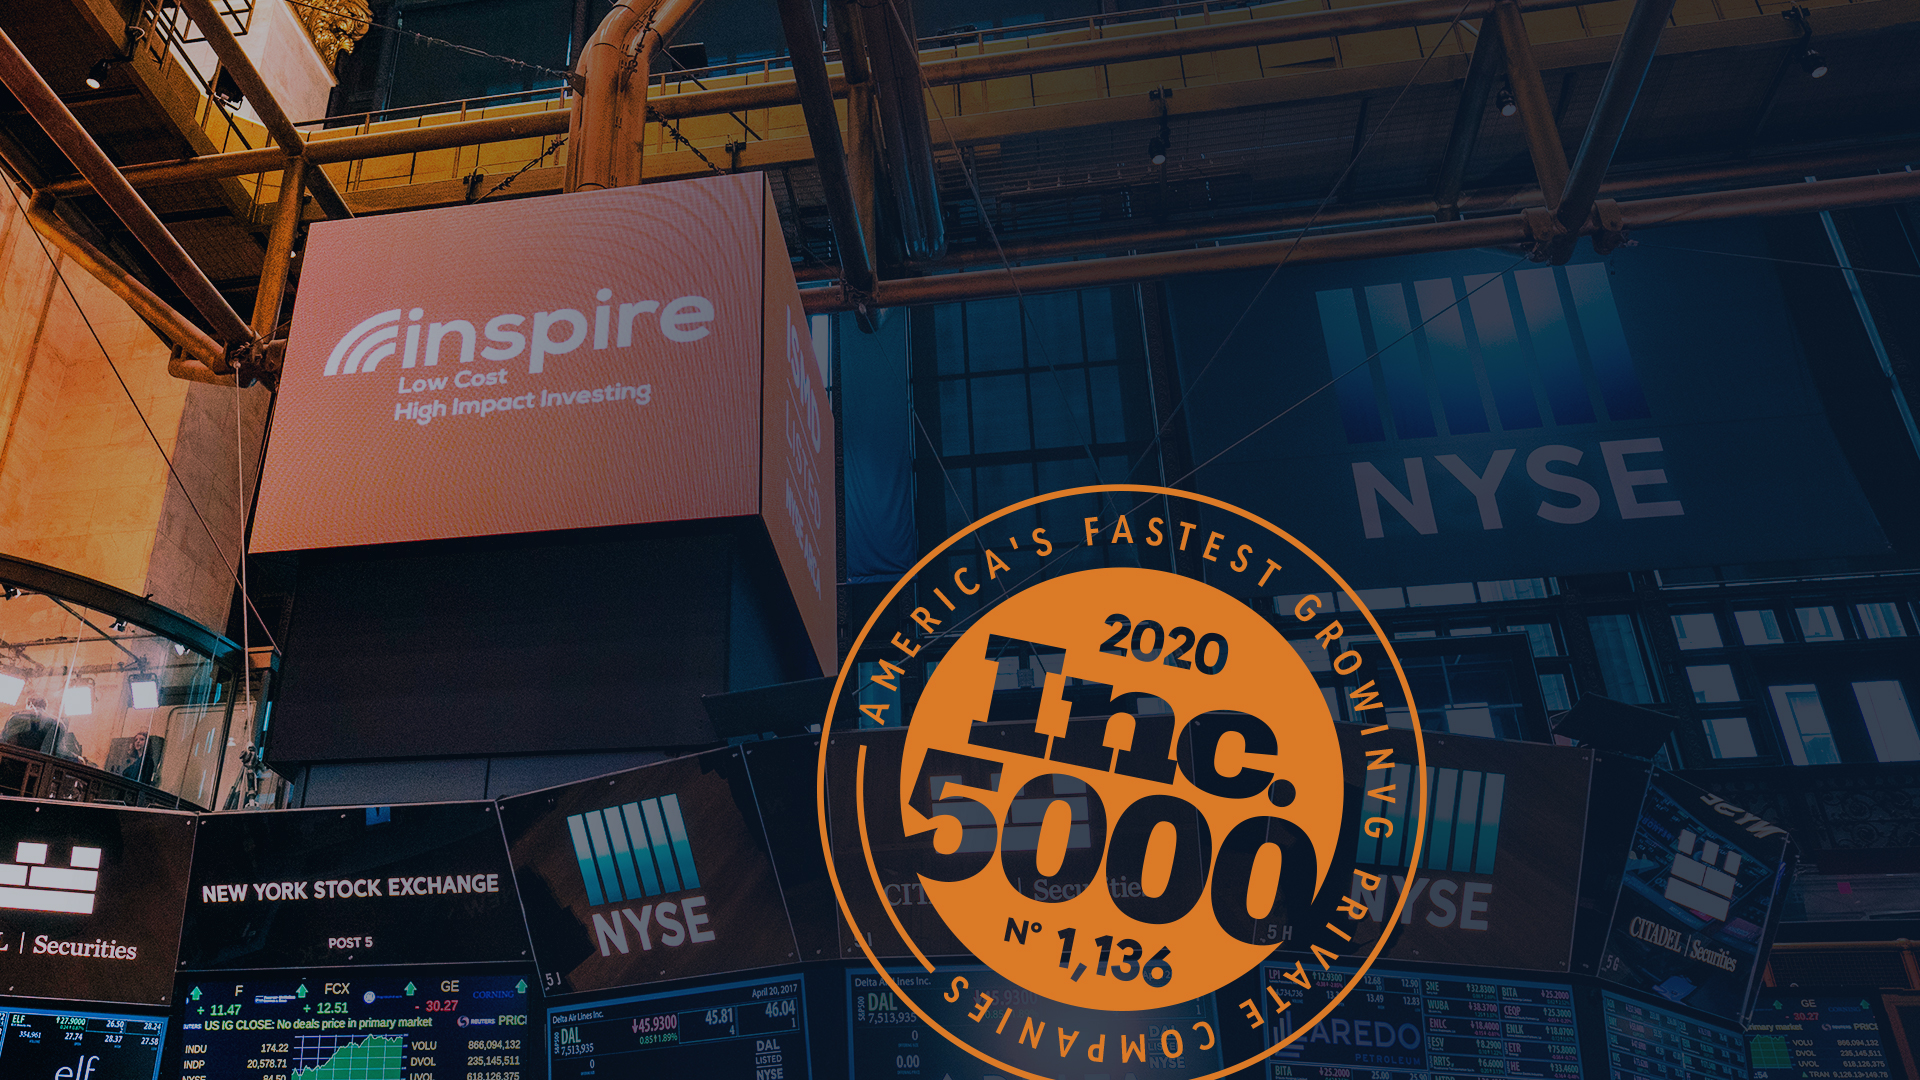 Inspire Investing Recognized On Inc. 5000 List Of Most Successful Private Companies